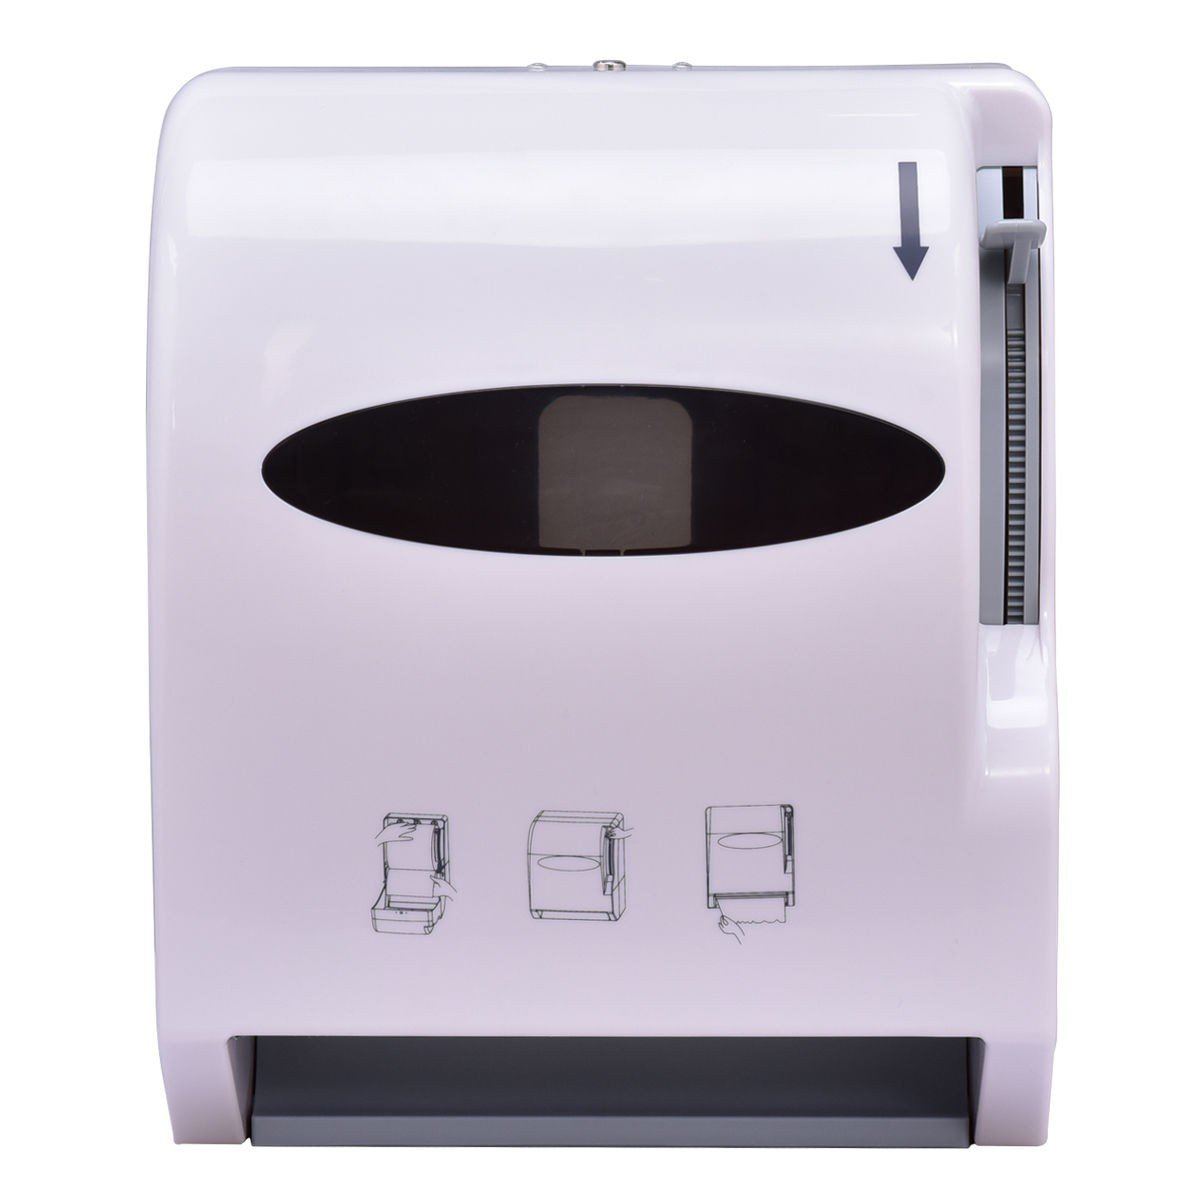 BeUniqueToday Durable Wall Mount Heavy Roll Paper Towel Dispenser, White Durable Roll Paper Towel Dispenser Wall Mount Bathroom, Wall Mounted Roll Paper Towel Dispenser Space Saving and Economical